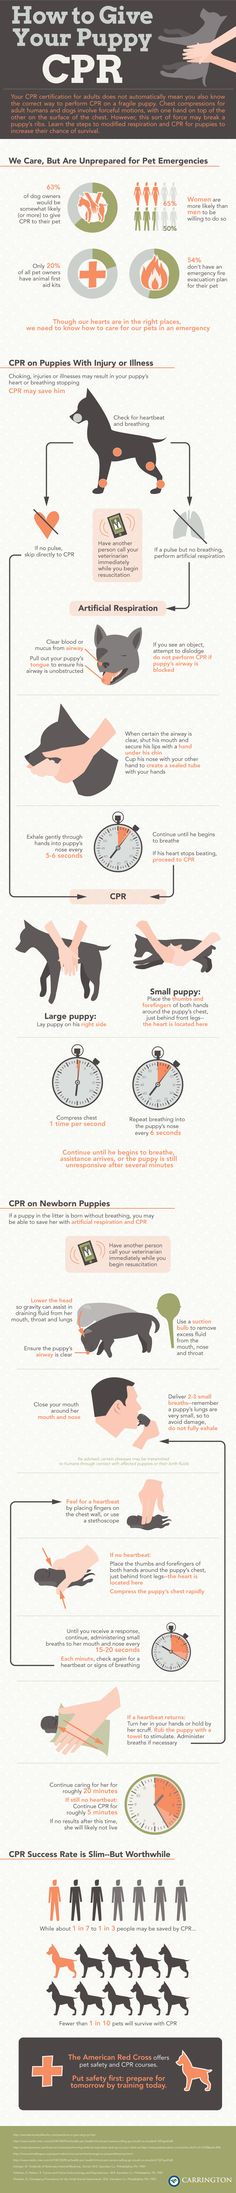 How to: Give Your Puppy CPR